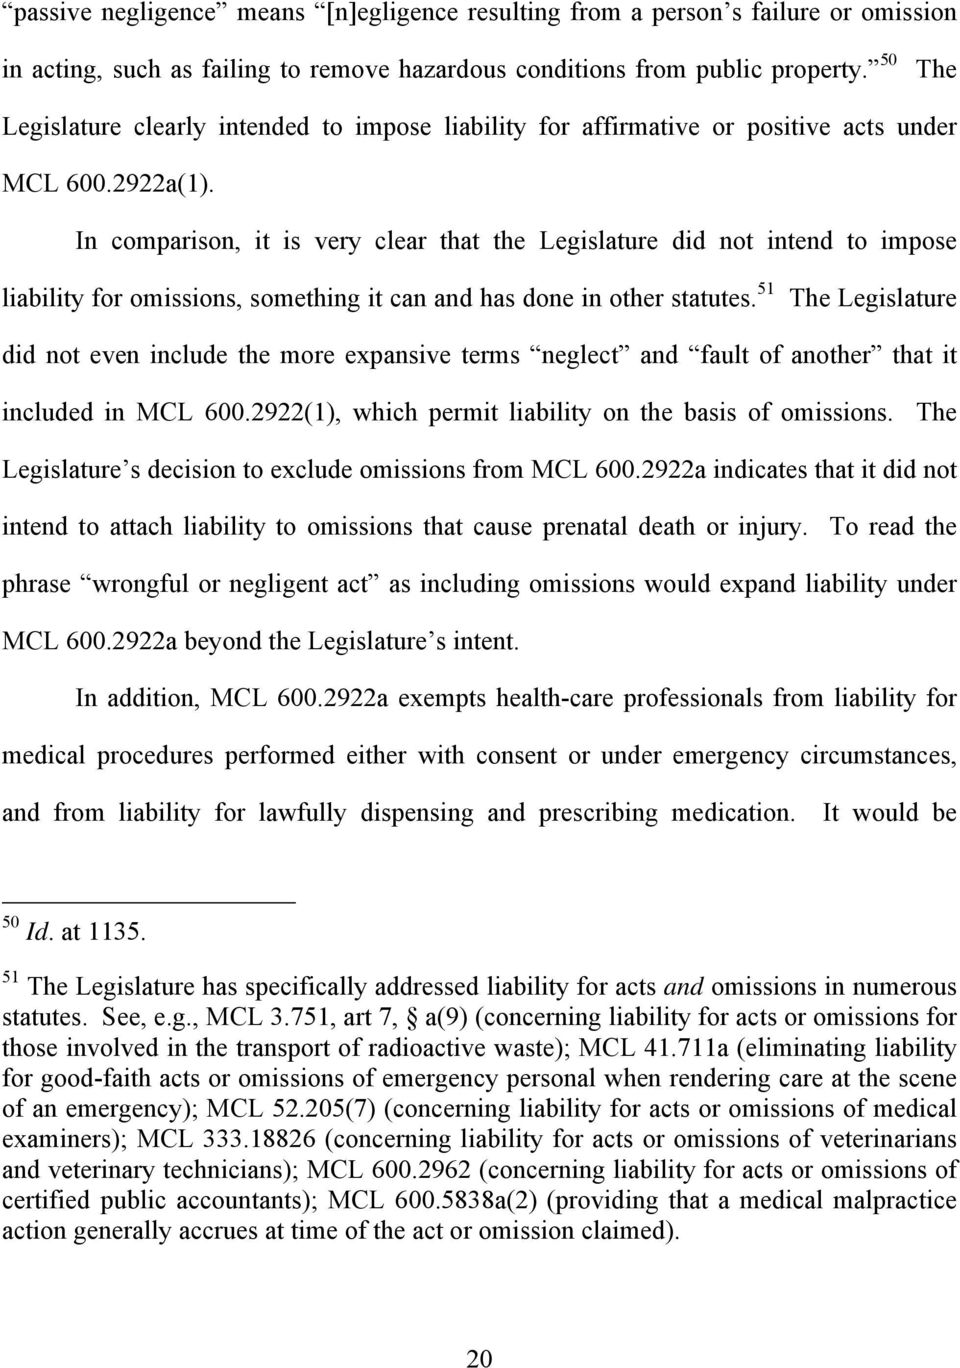 In comparison, it is very clear that the Legislature did not intend to impose liability for omissions, something it can and has done in other statutes.